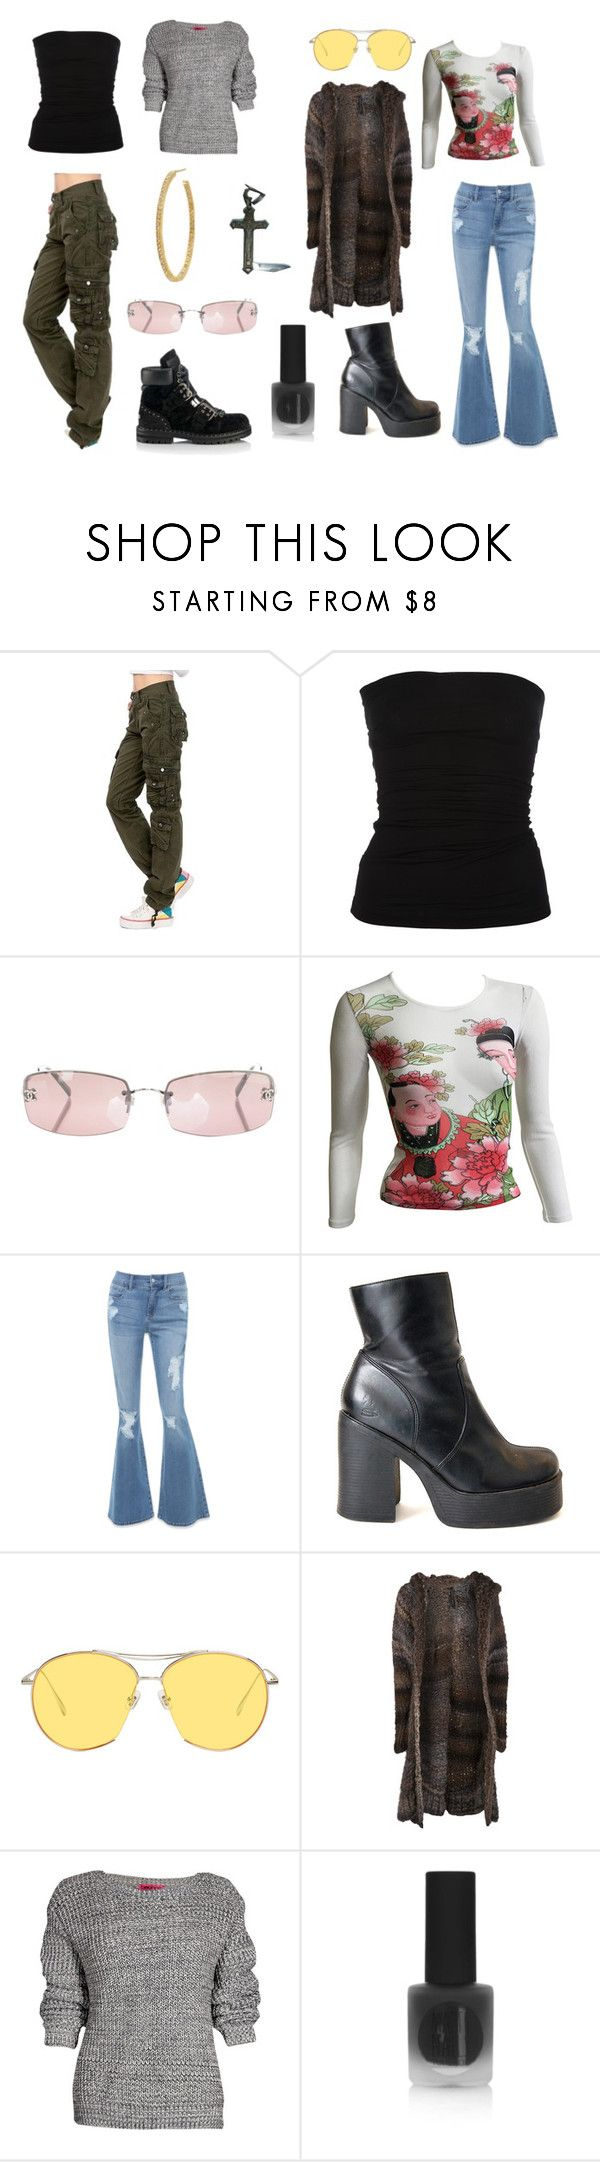 """Early 2000's - day vs night"" by the-trickster-king ❤ liked on Polyvore featuring Plein Sud, Jimmy Choo, Chanel, Kenzo, Bebe, Gentle Monster, dominic louis, Boohoo and Topshop"